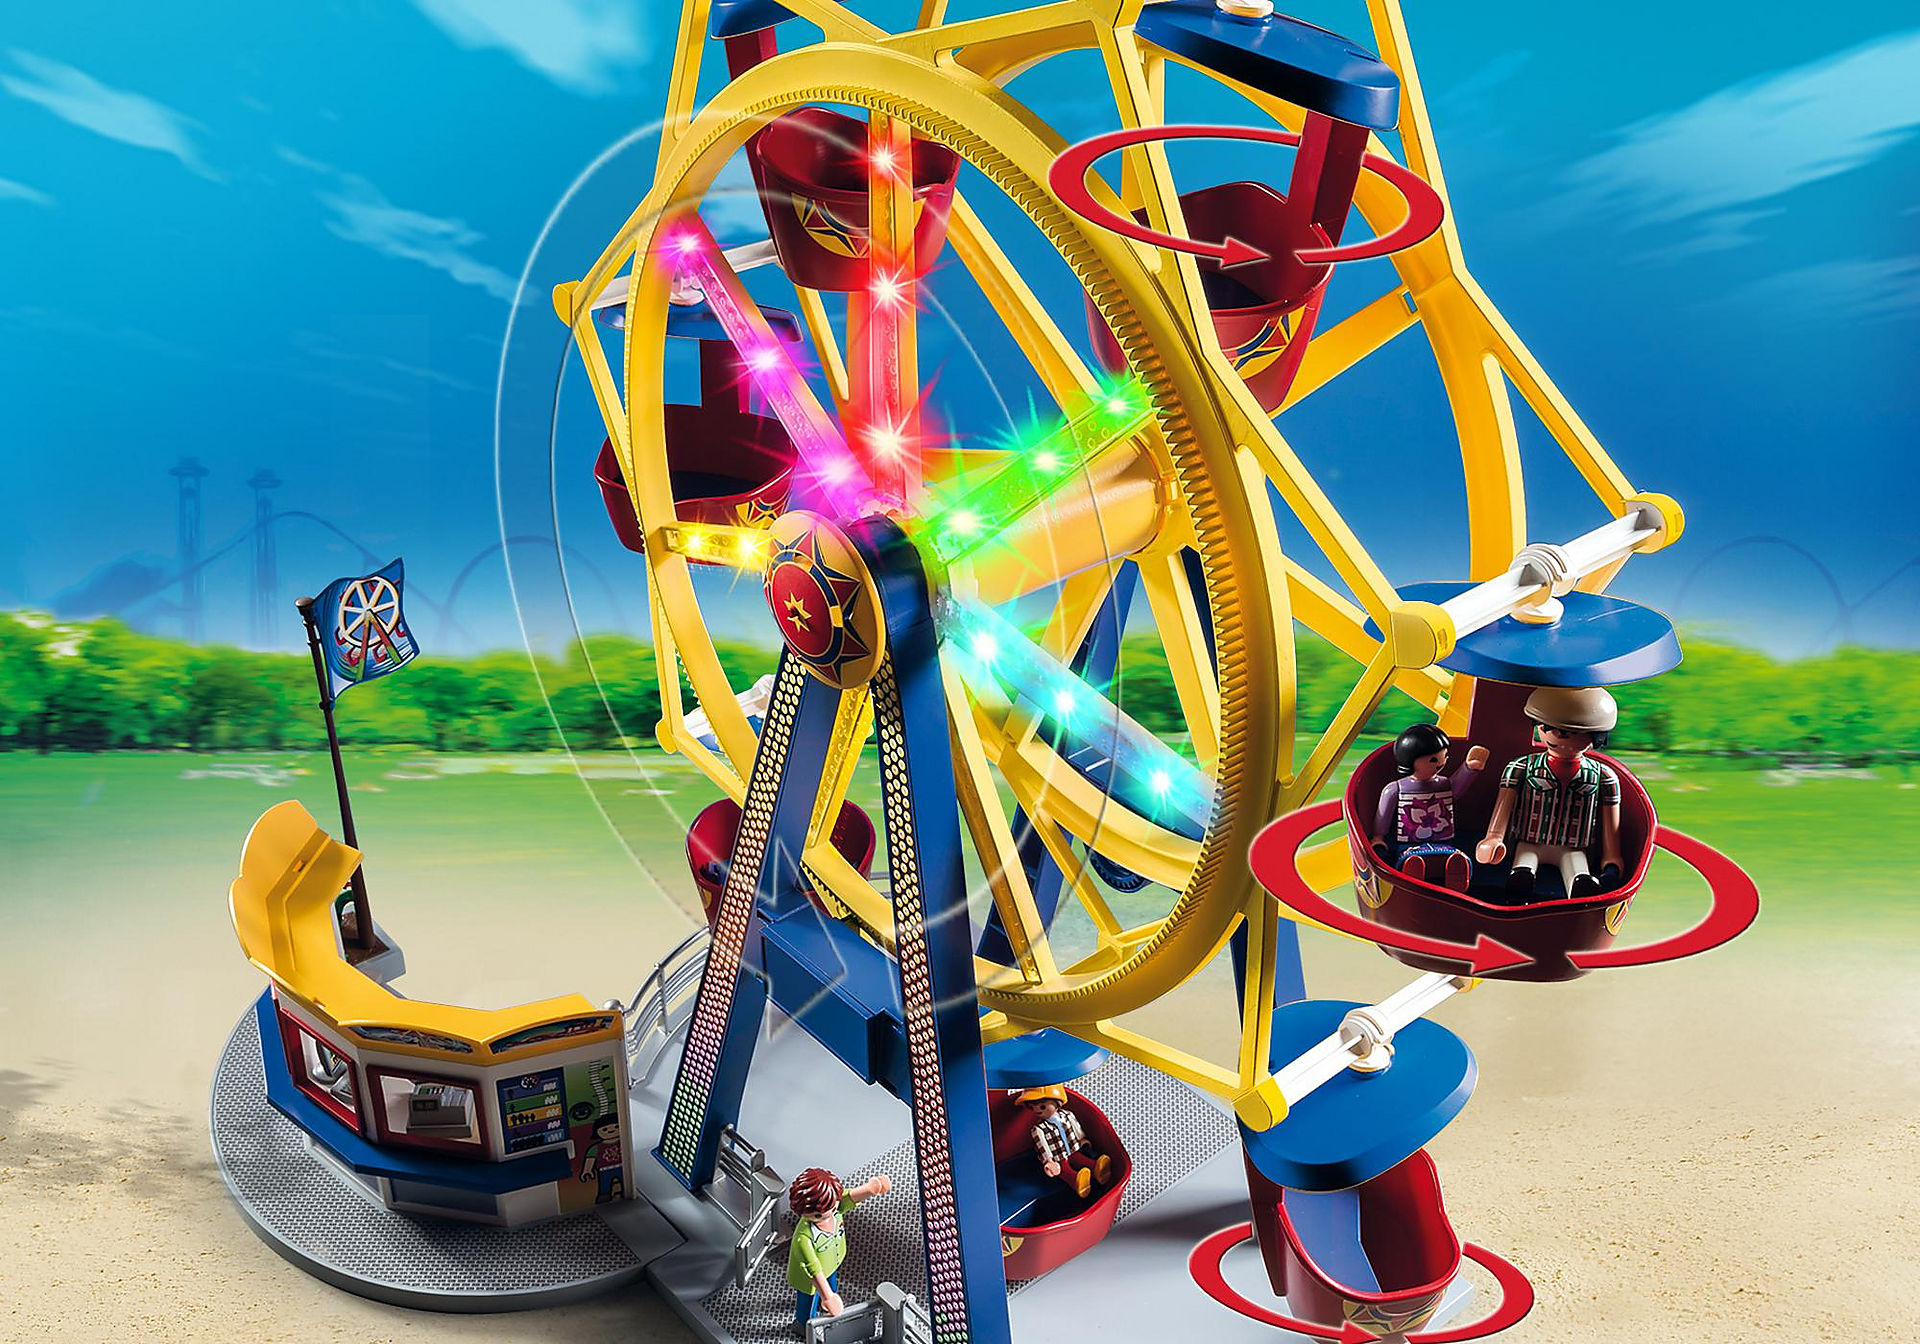 http://media.playmobil.com/i/playmobil/5552_product_extra3/Ferris Wheel with Lights